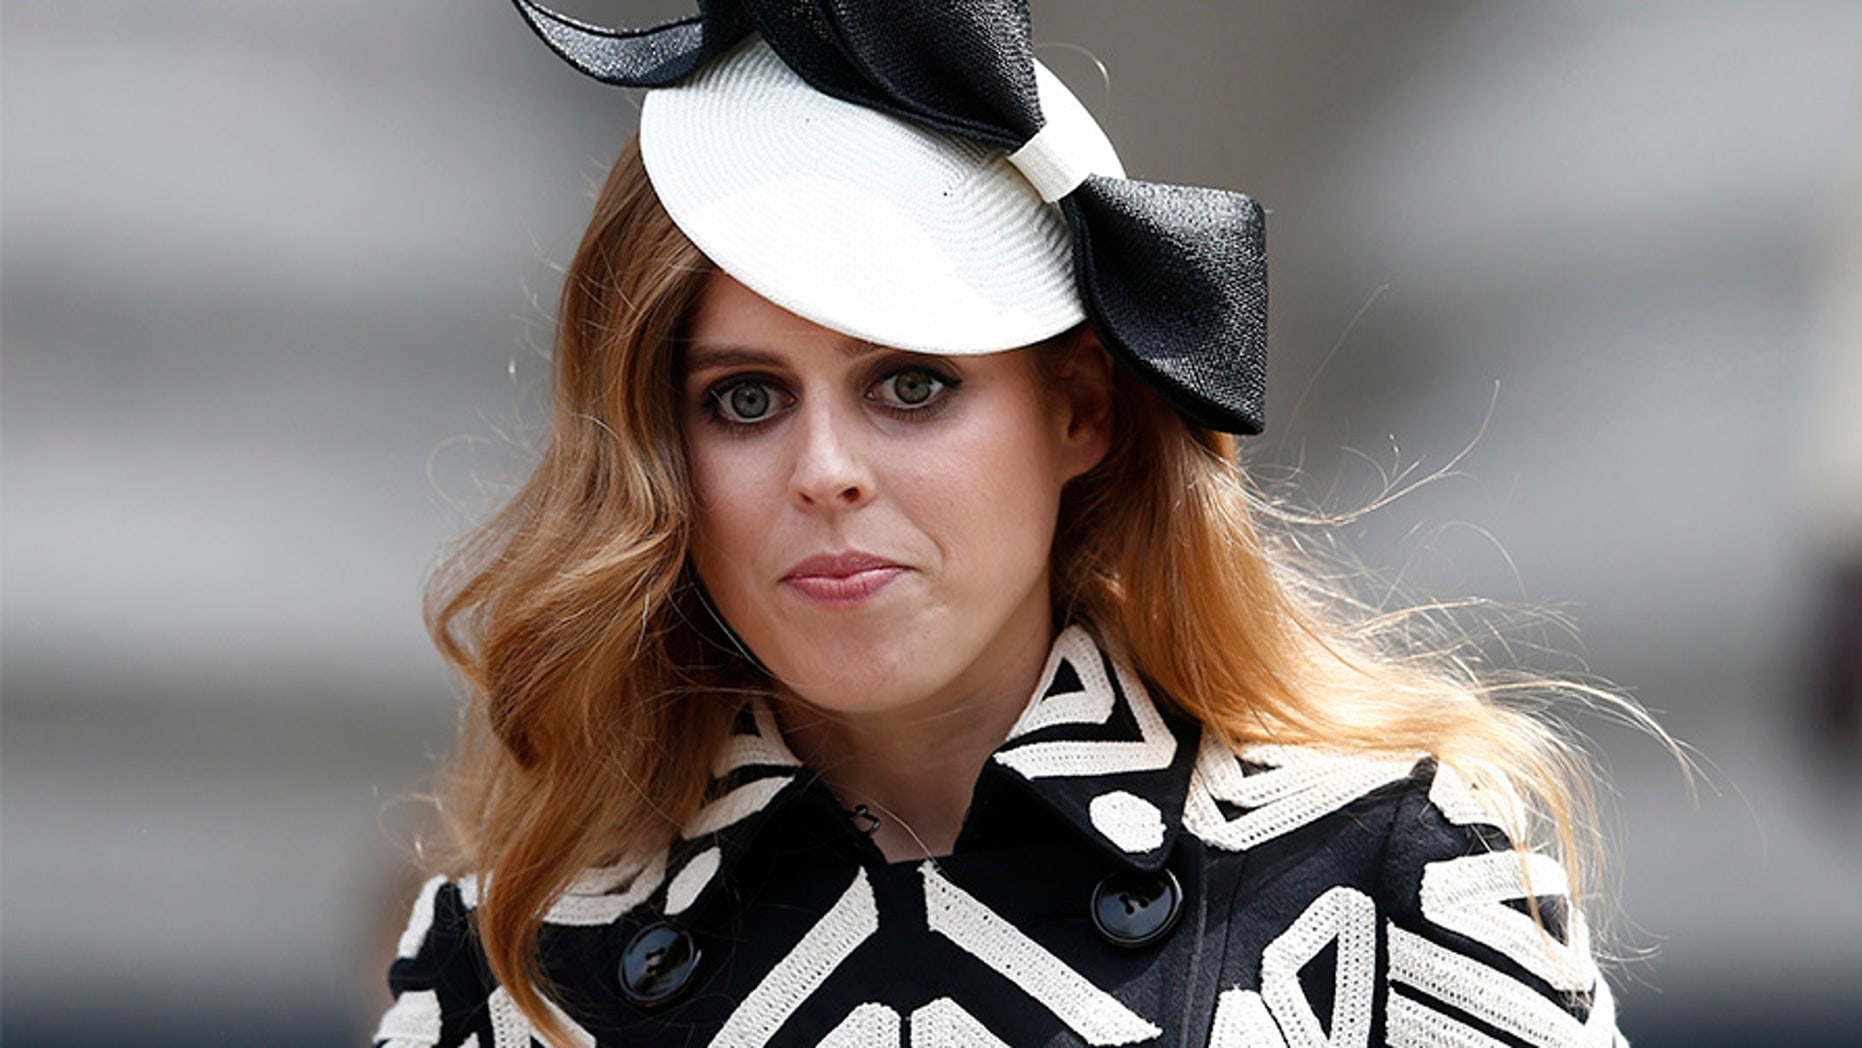 Britain's Princess Beatrice leaves after a service of thanksgiving for Queen Elizabeth's 90th birthday at St Paul's Cathedral in London, Britain, June 10, 2016.    REUTERS/Peter Nicholls  - LR1EC6A0YNKQ1